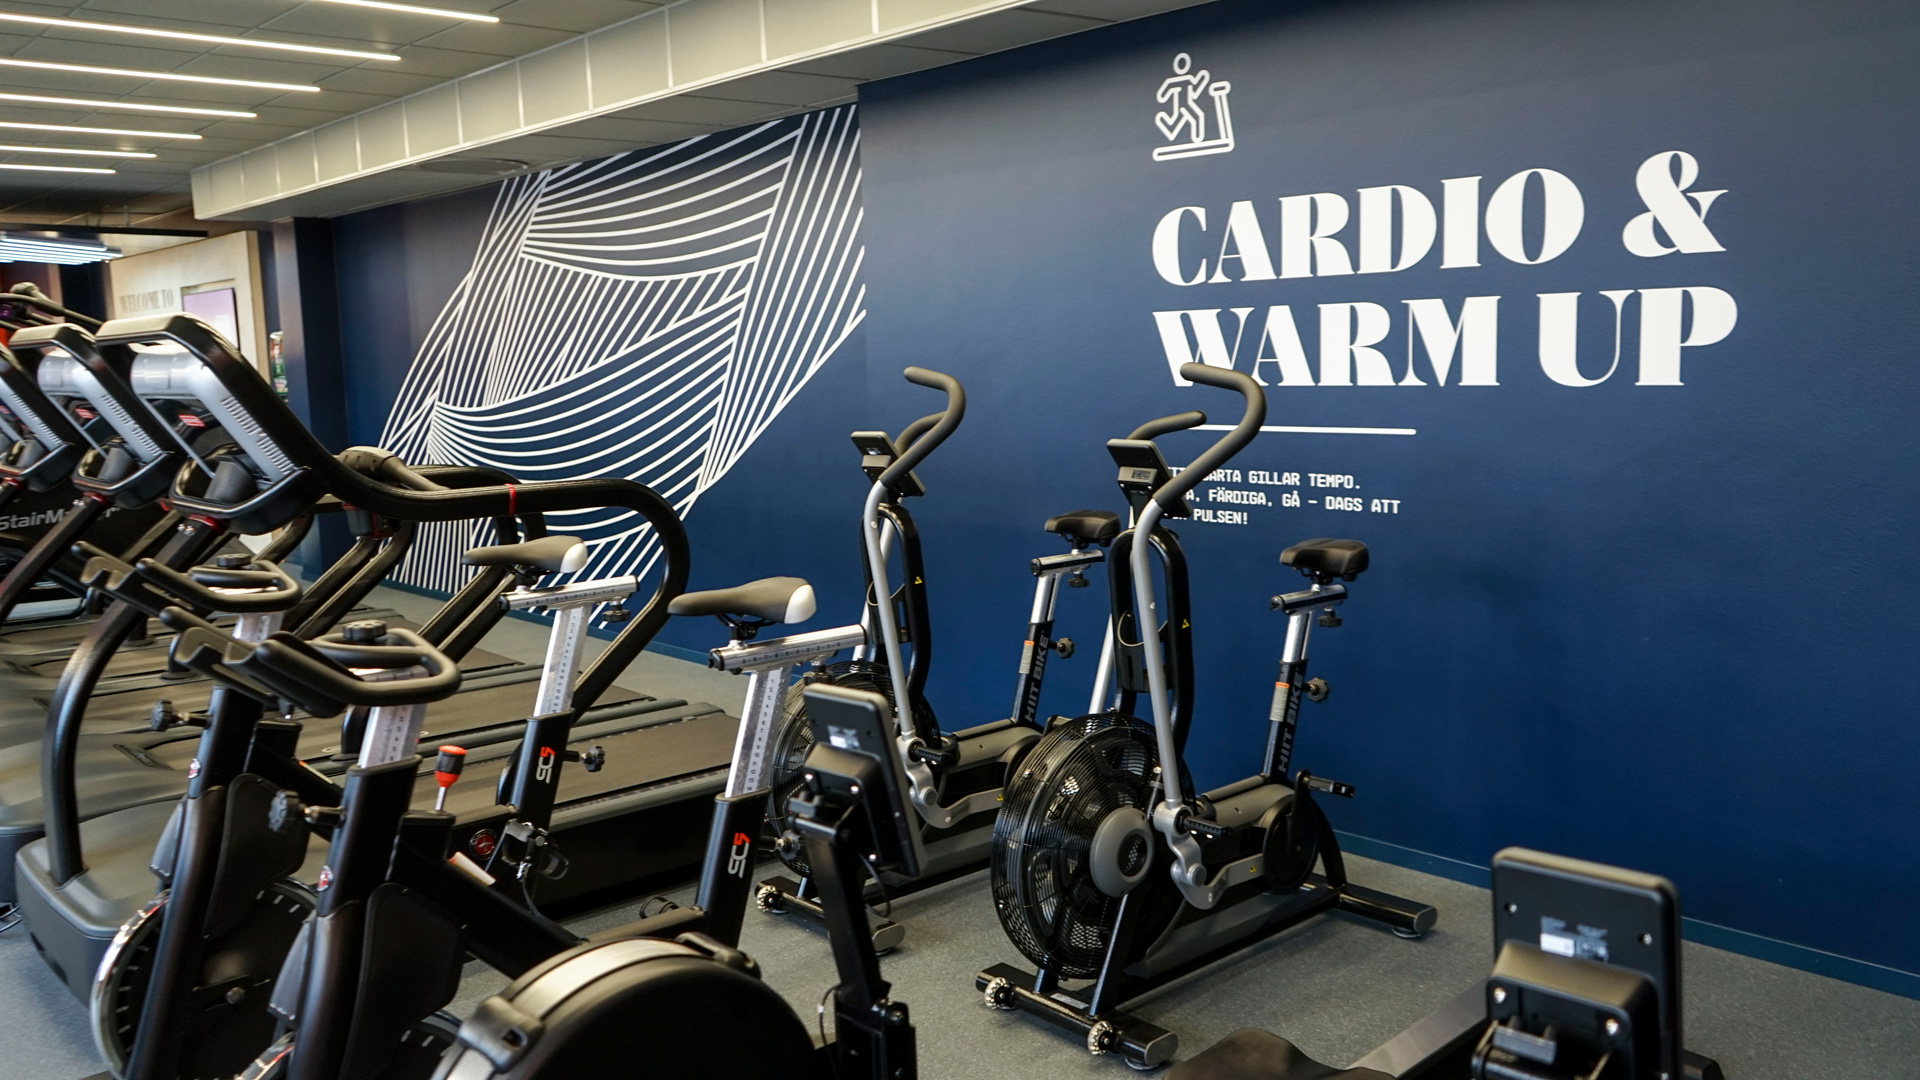 The cardio and warmup area at Fitness24Seven